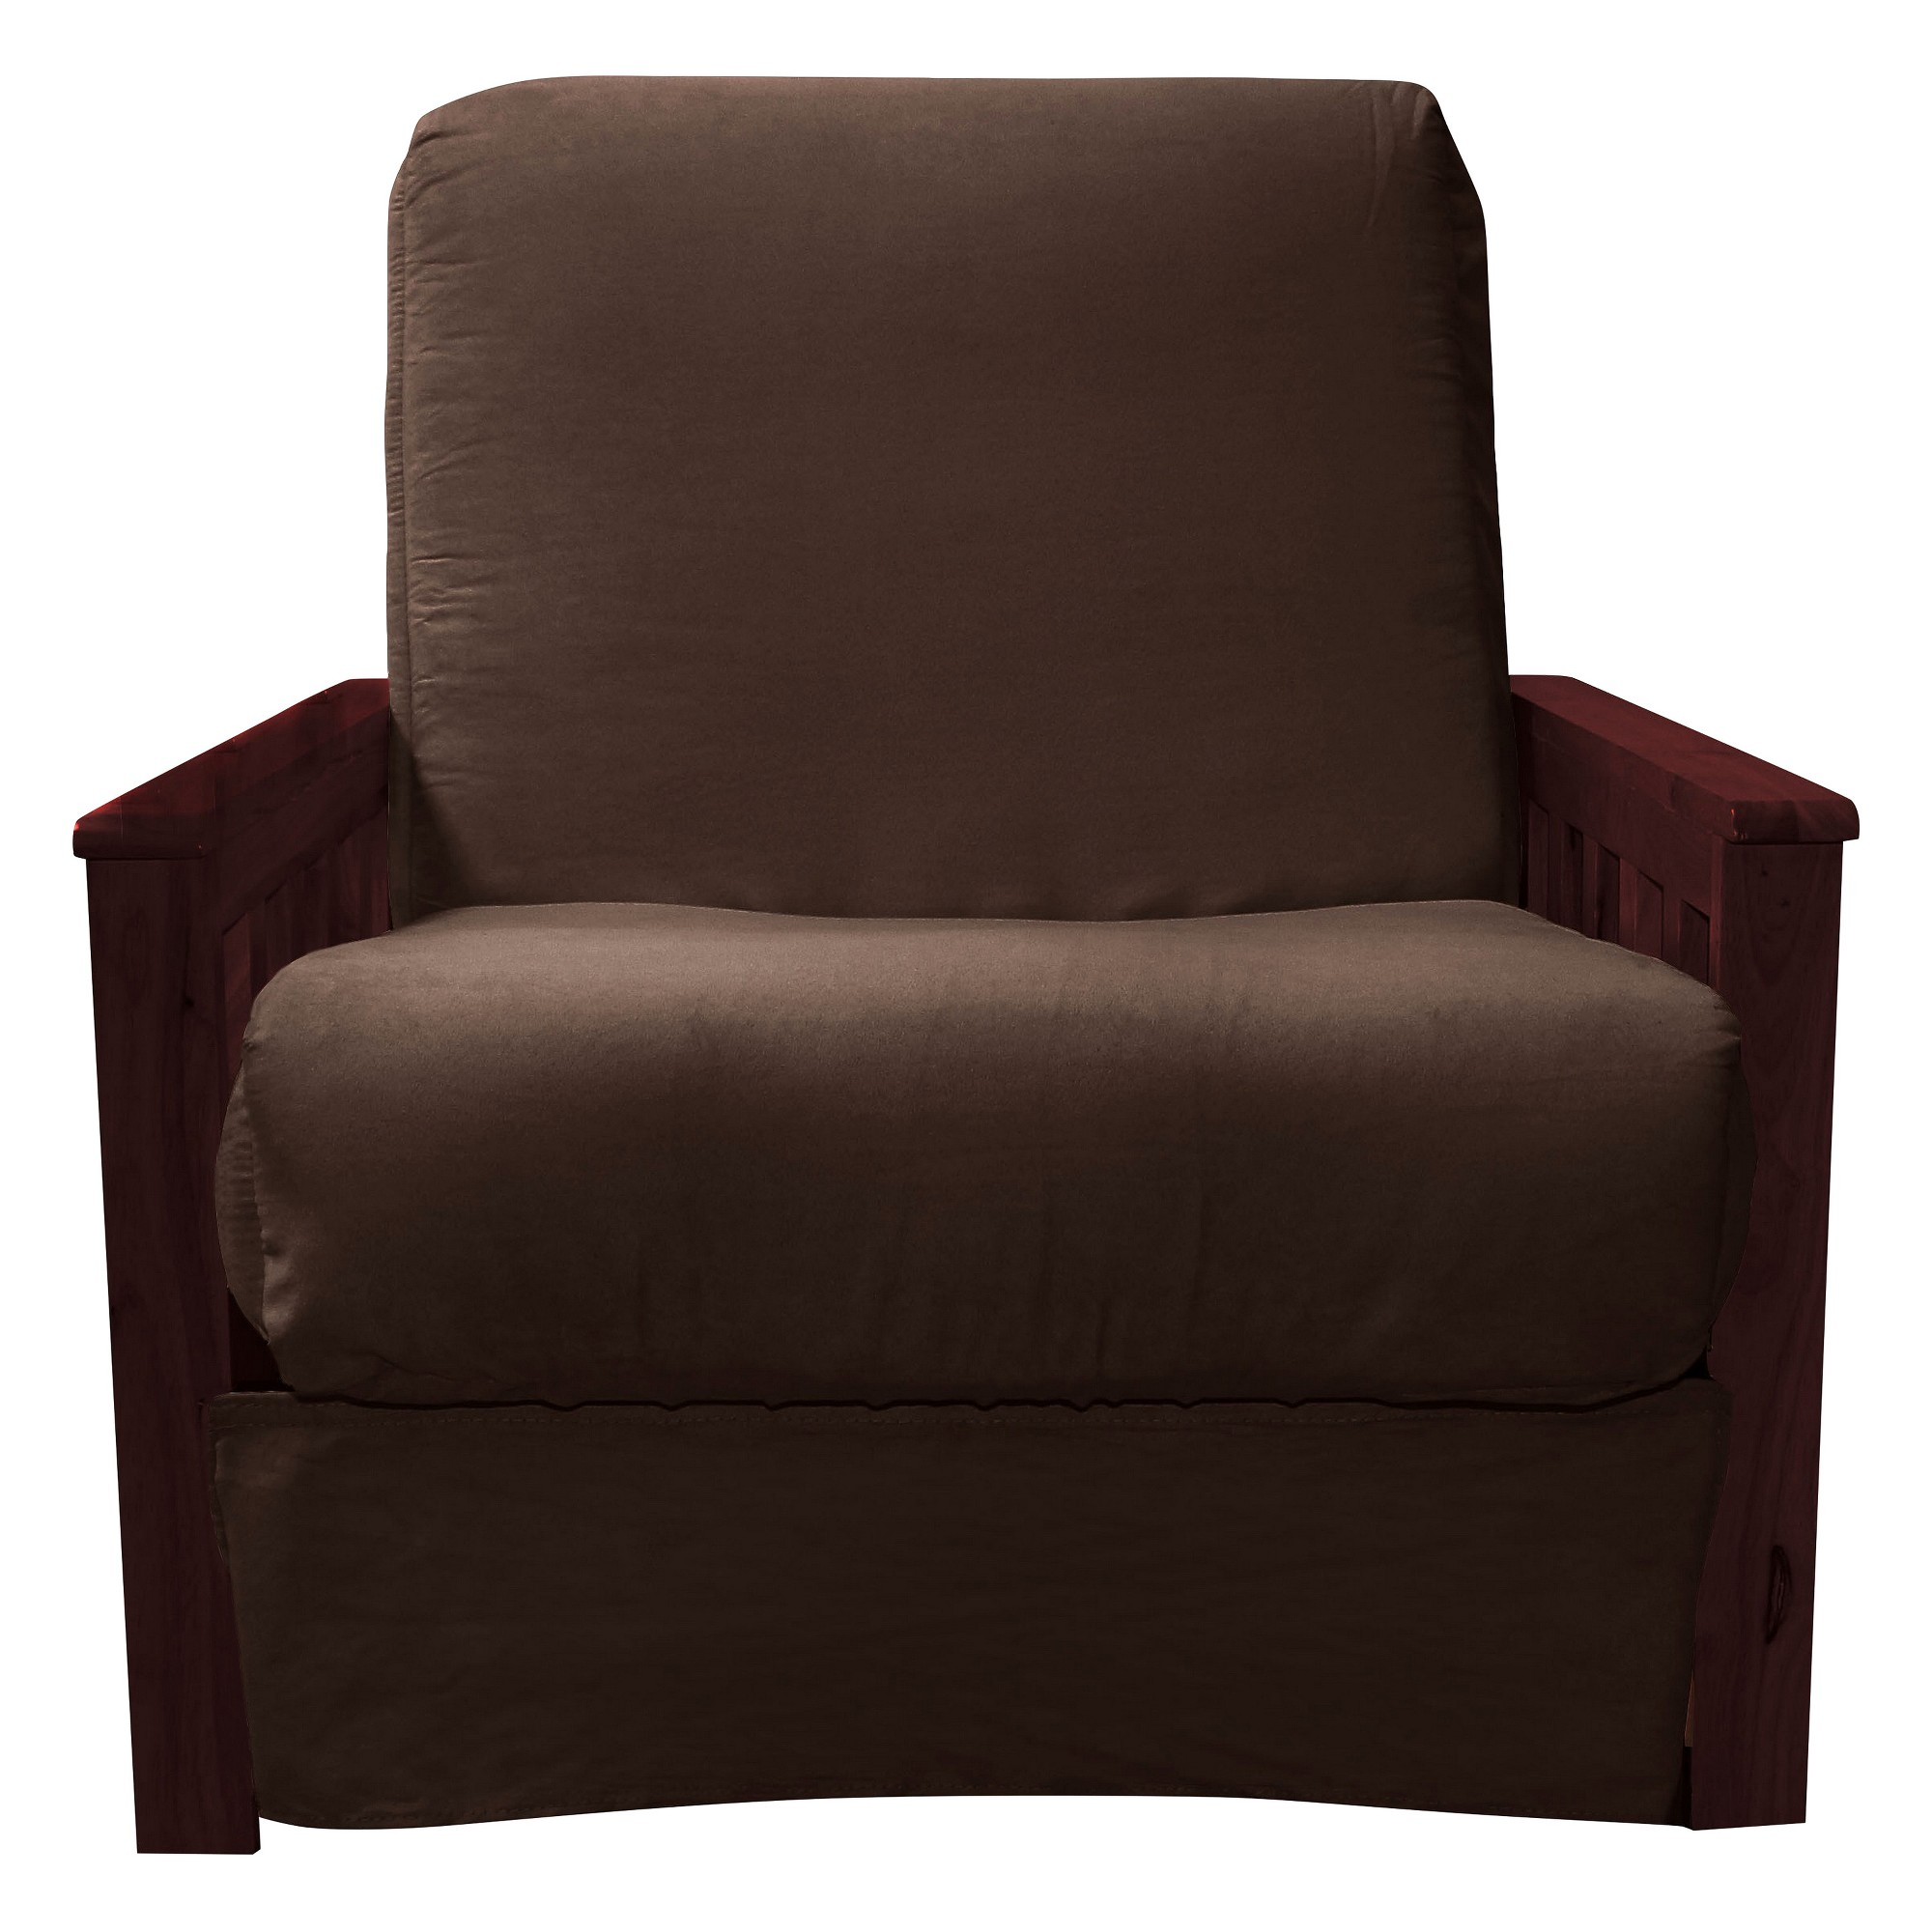 Mission Perfect Convertible Futon Sofa Sleeper   Mahogany Finish Wood Arms    Chocolate Brown Upholstery